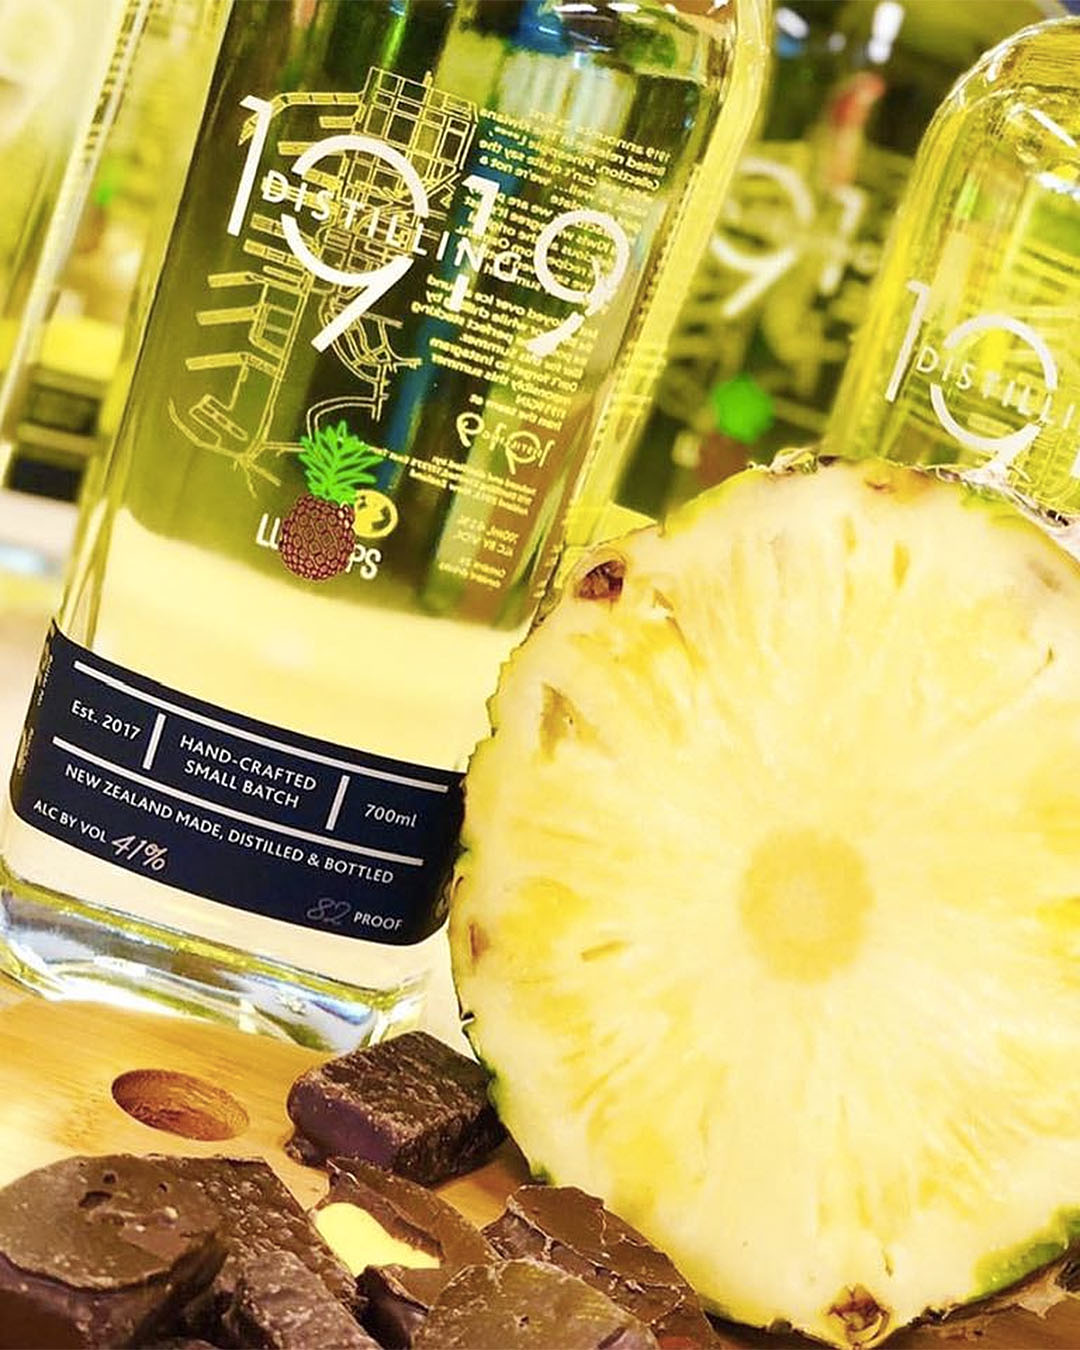 Pineapple lumps inspired gin from 1919.